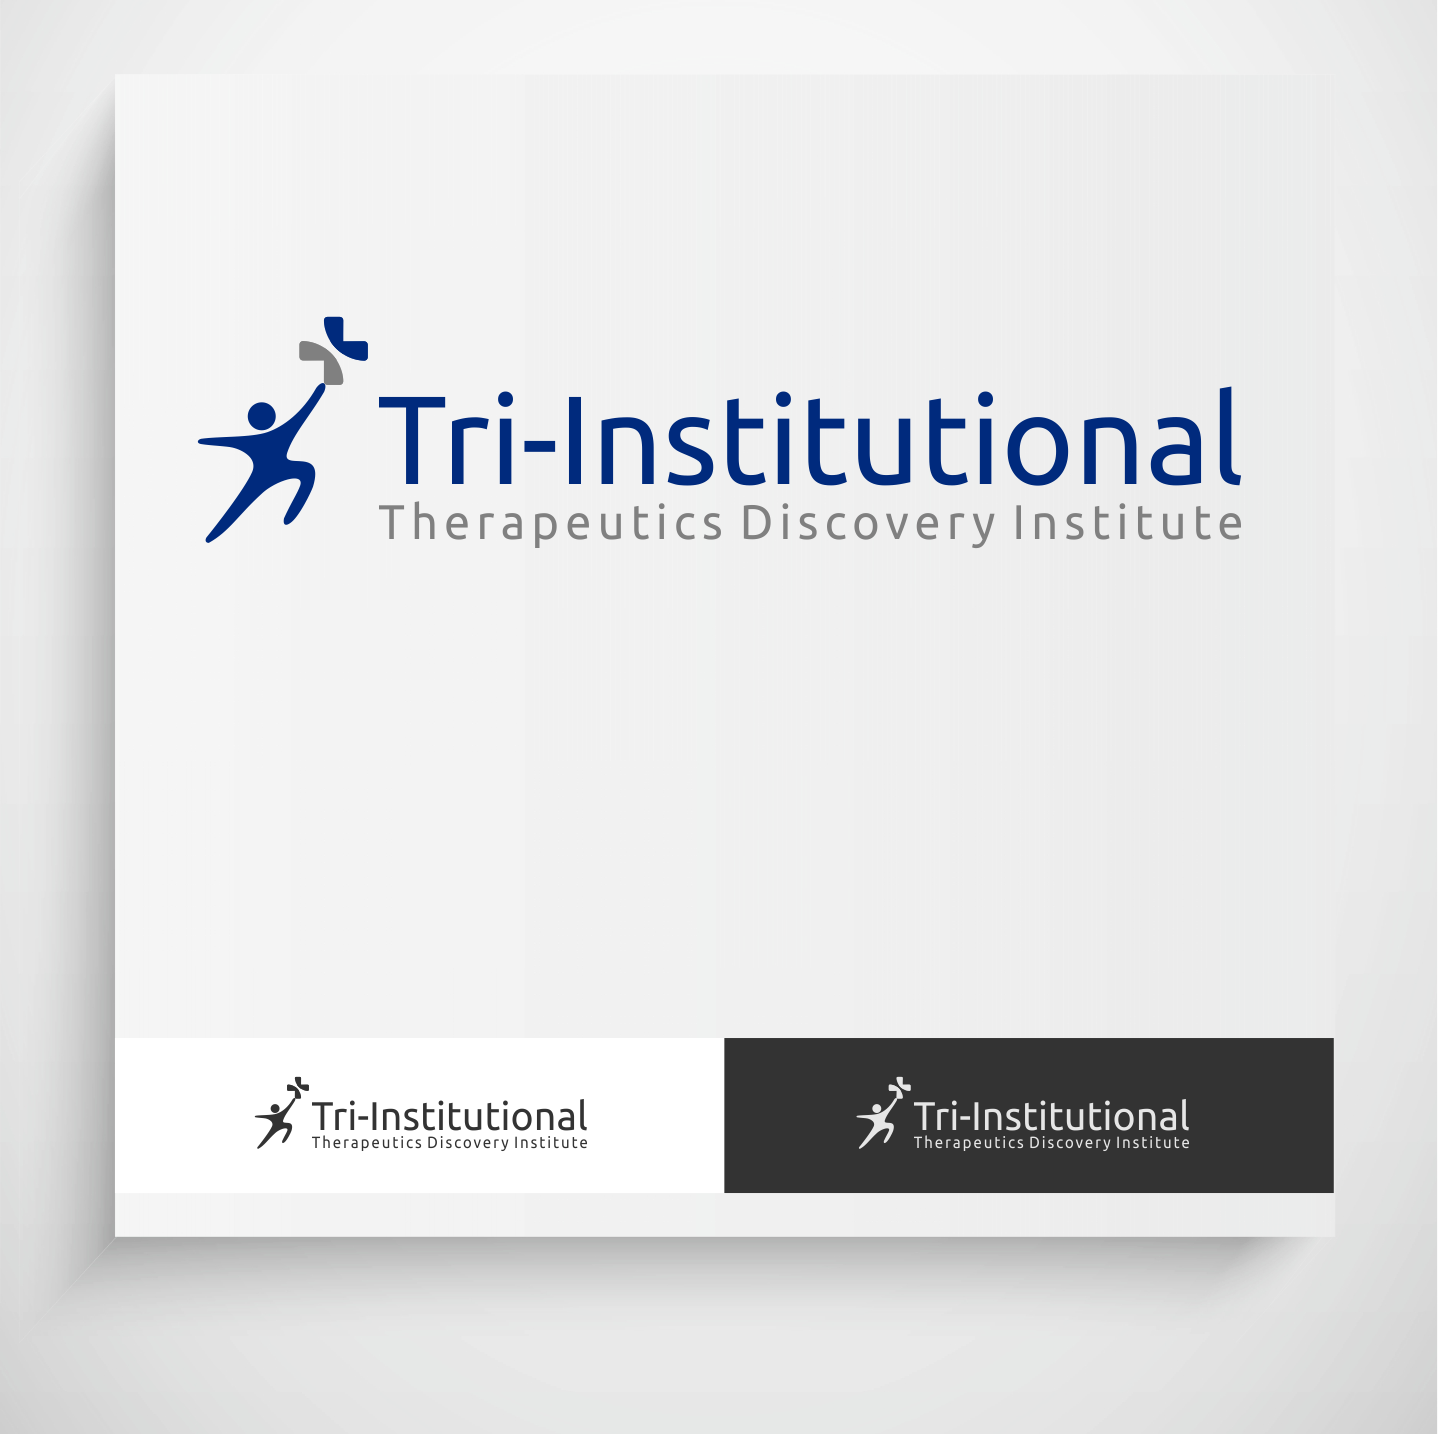 Logo Design by Krzysztof Mokanek - Entry No. 76 in the Logo Design Contest Inspiring Logo Design for Tri-Institutional Therapeutics Discovery Institute.